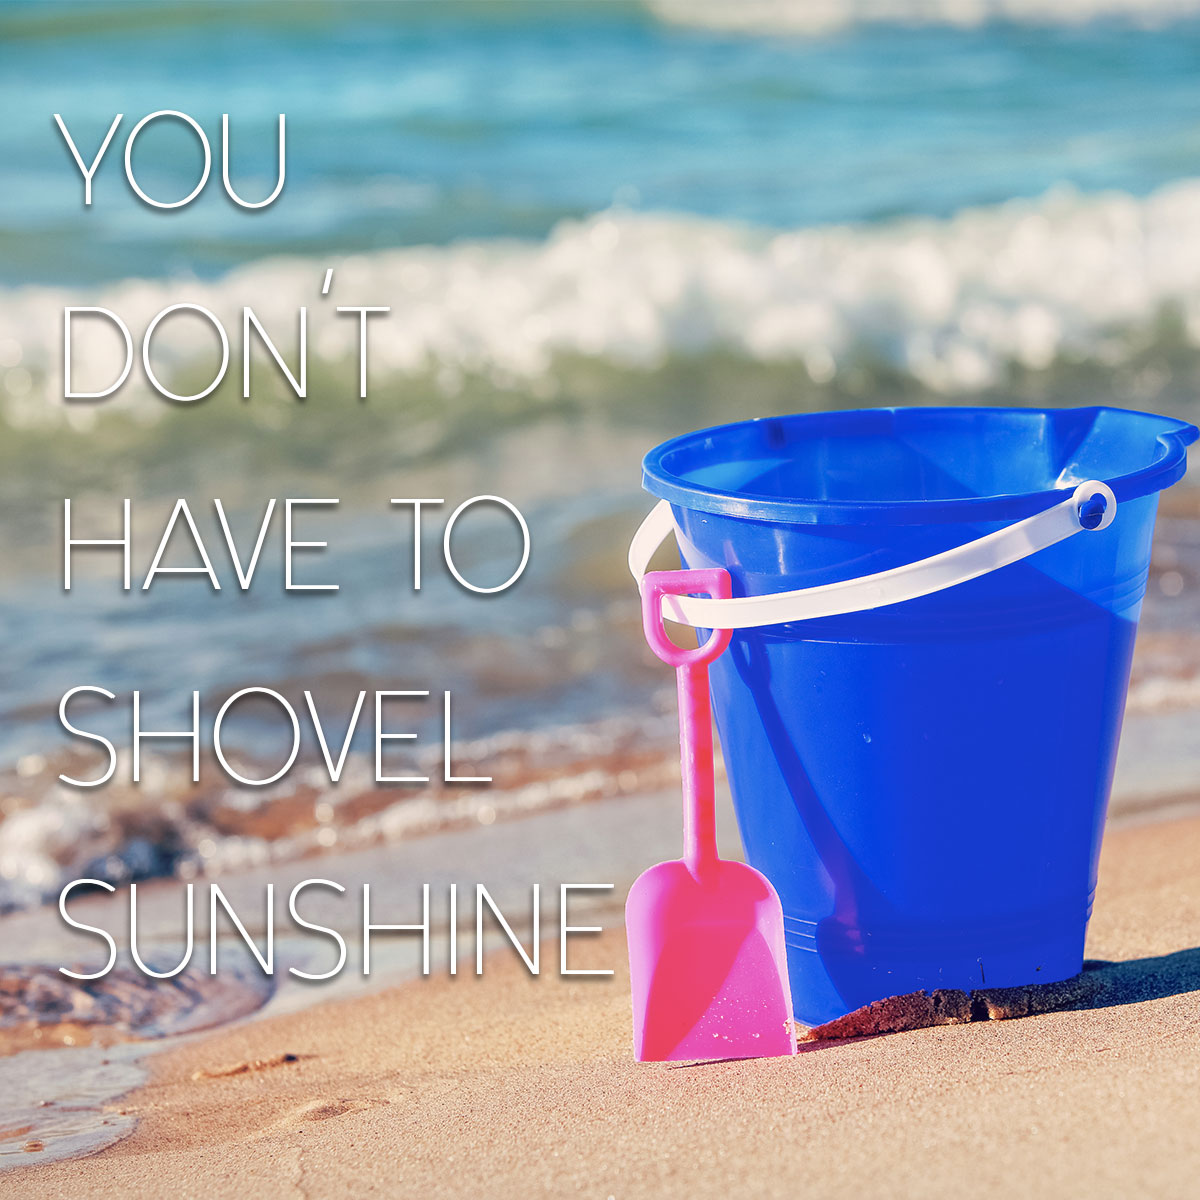 You Don't Have to Shovel Sunshine